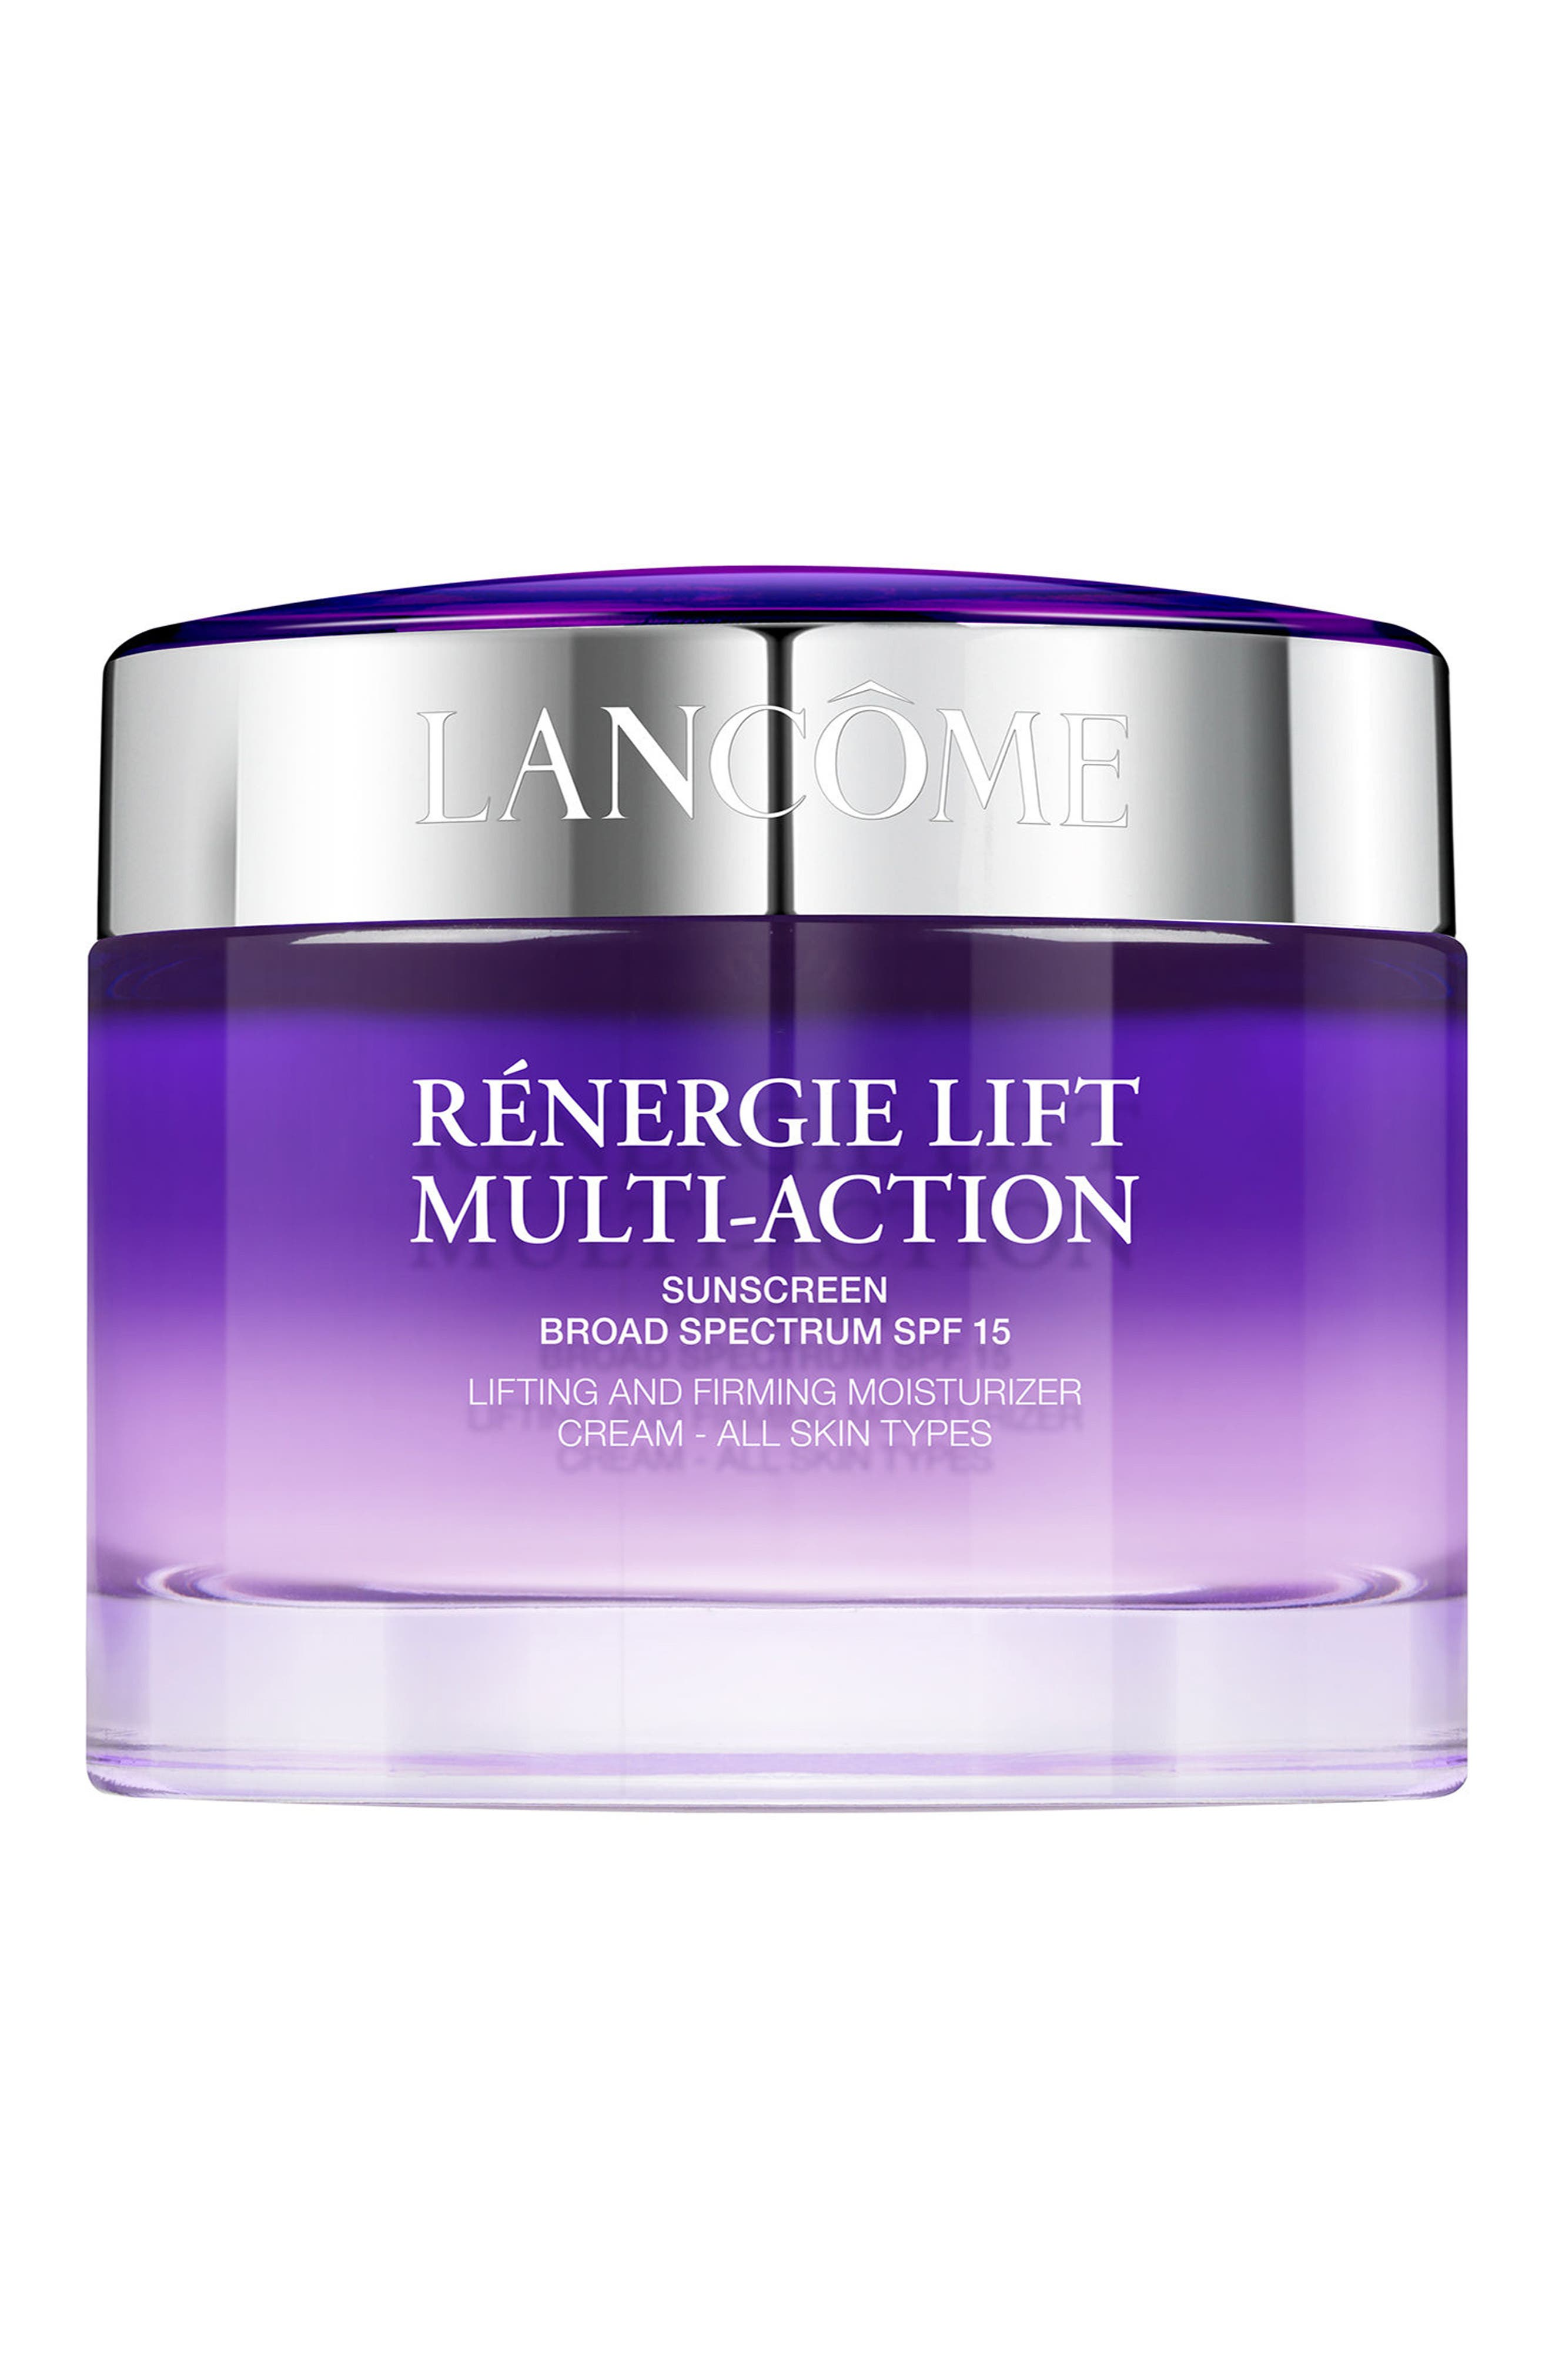 Rénergie Lift Multi Action Moisturizer Cream SPF 15 for All Skin Types,                         Main,                         color, No Color